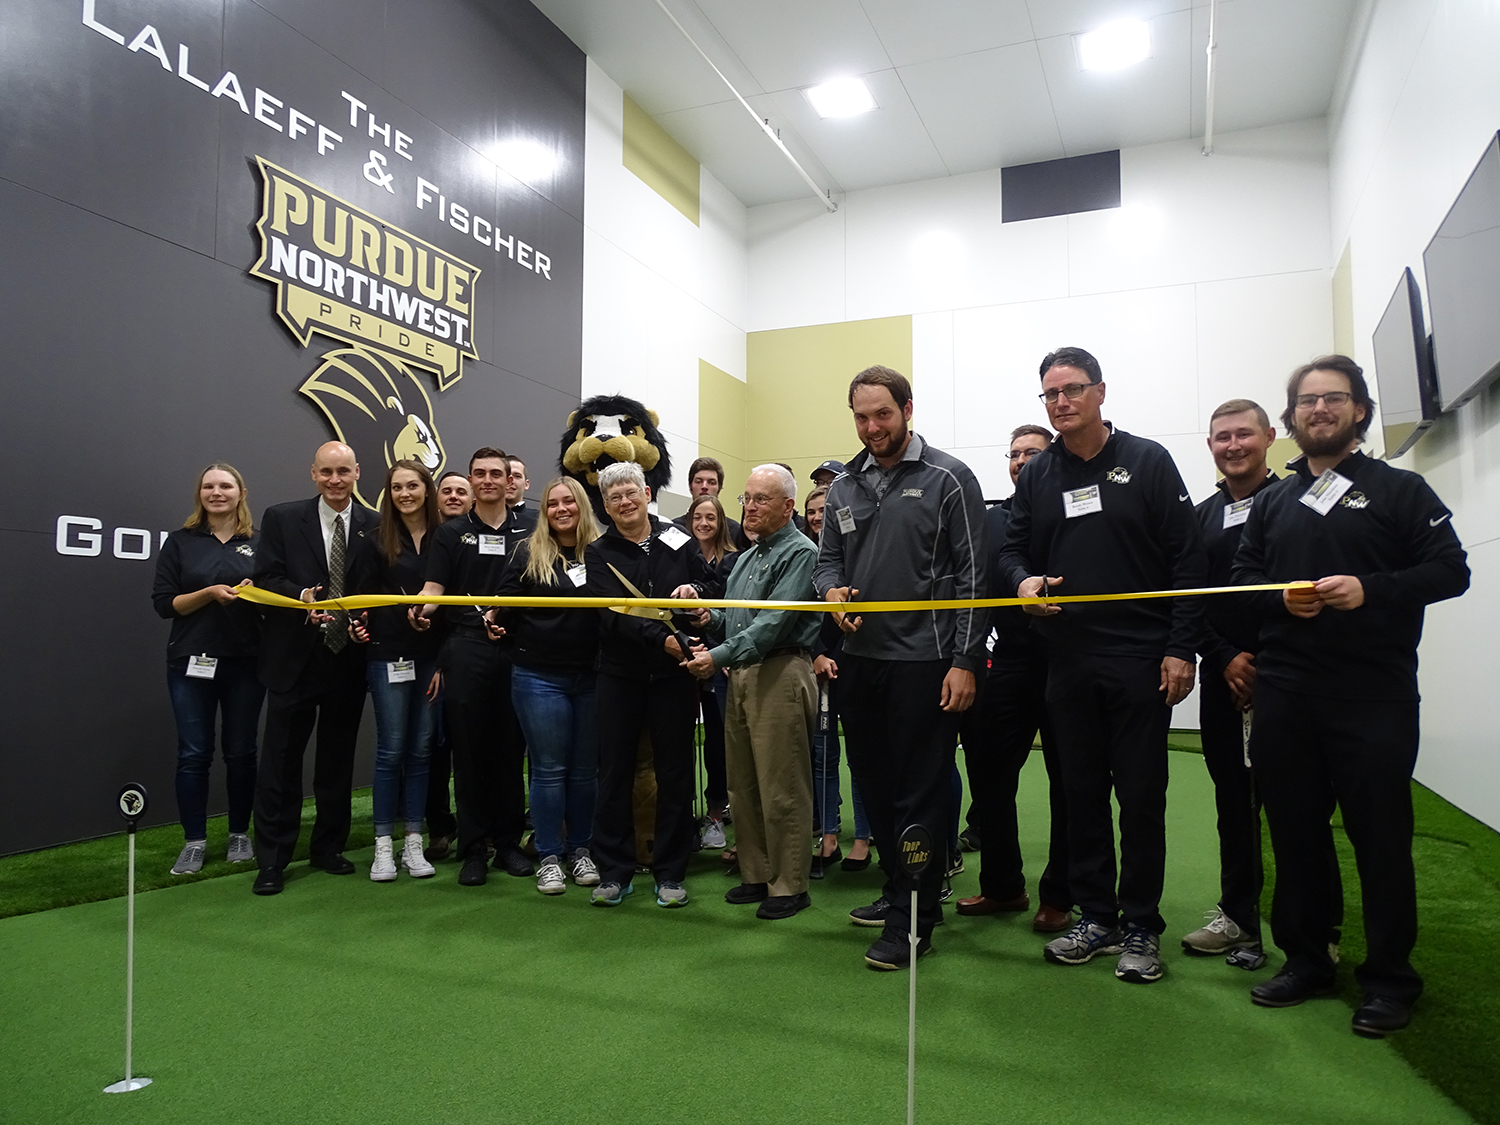 The ribbon cutting ceremony for the new center took place on April 27.